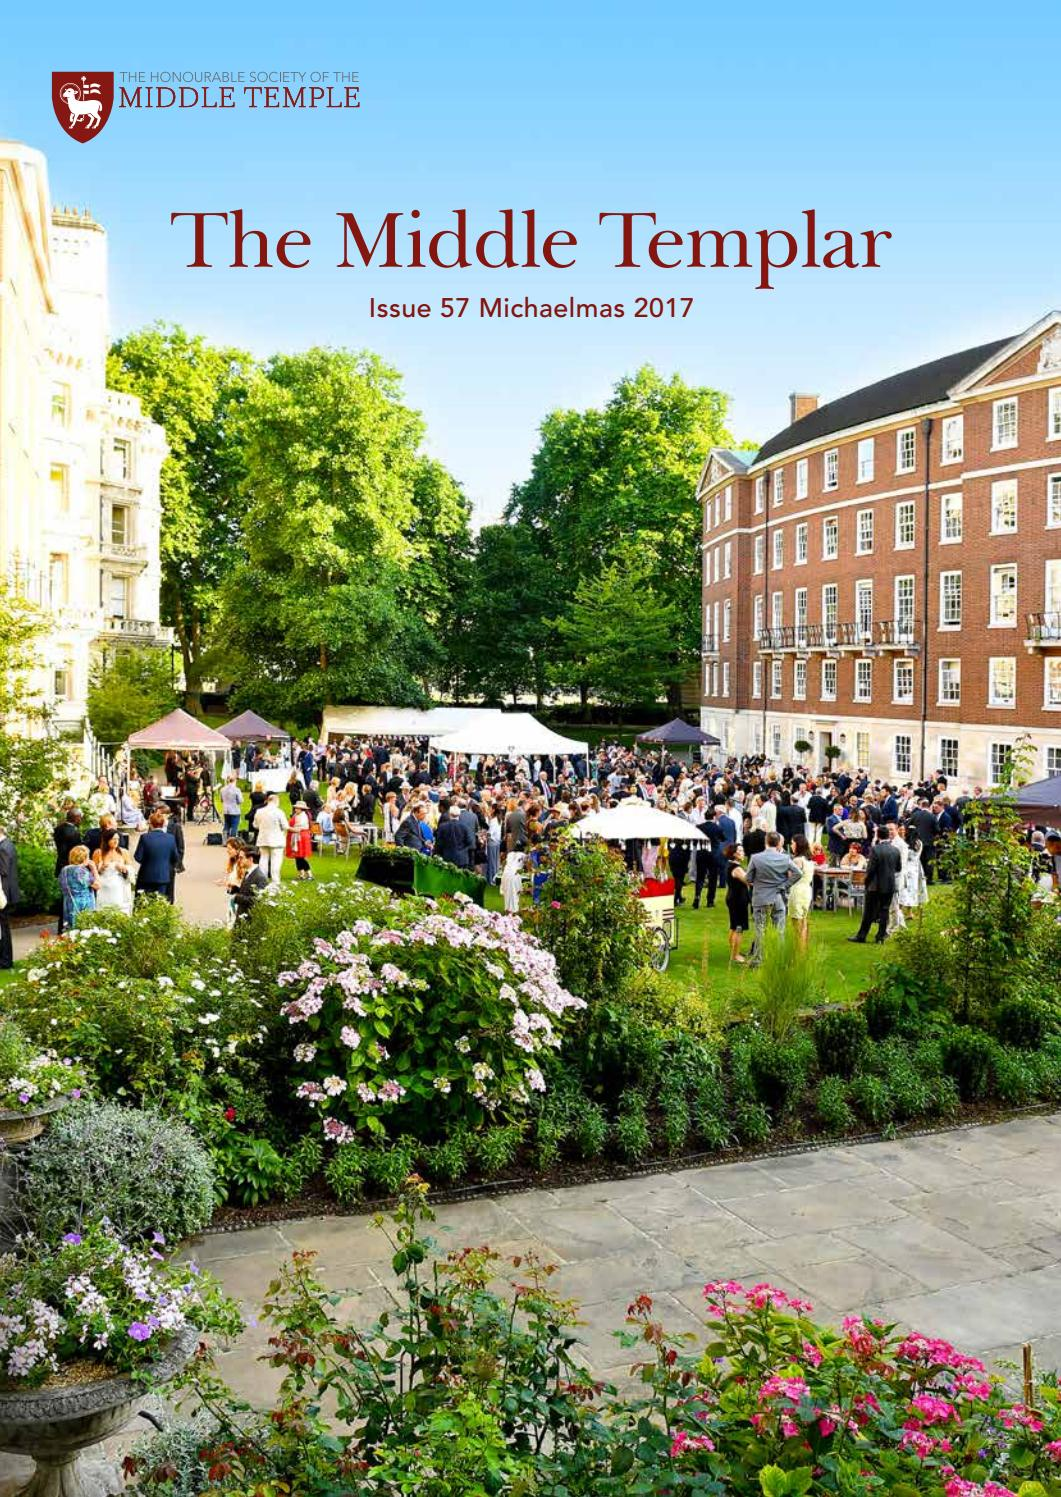 The Middle Templar 2017 by Middle Temple - issuu